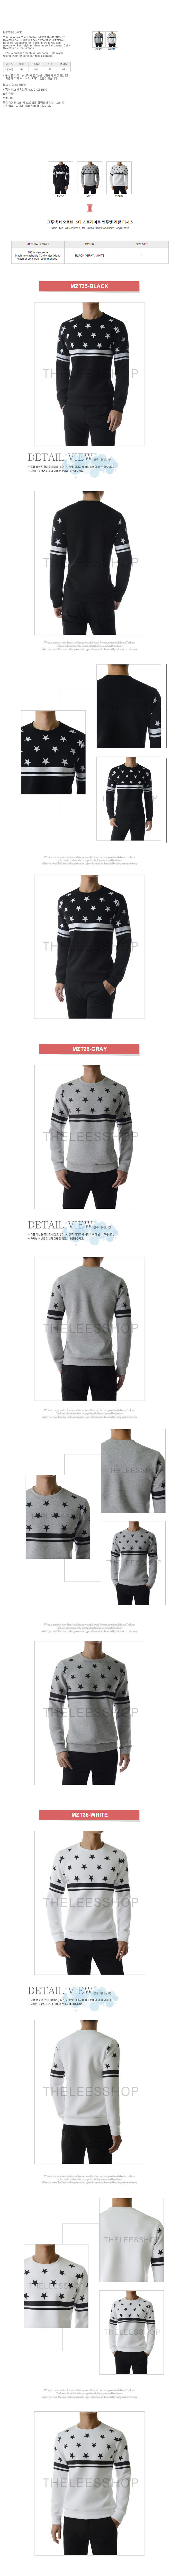 [ KOOLLOOK ] [KoolLook] Crew Neck Neoprene Star Long Sleeve Sweatshirt MZT35